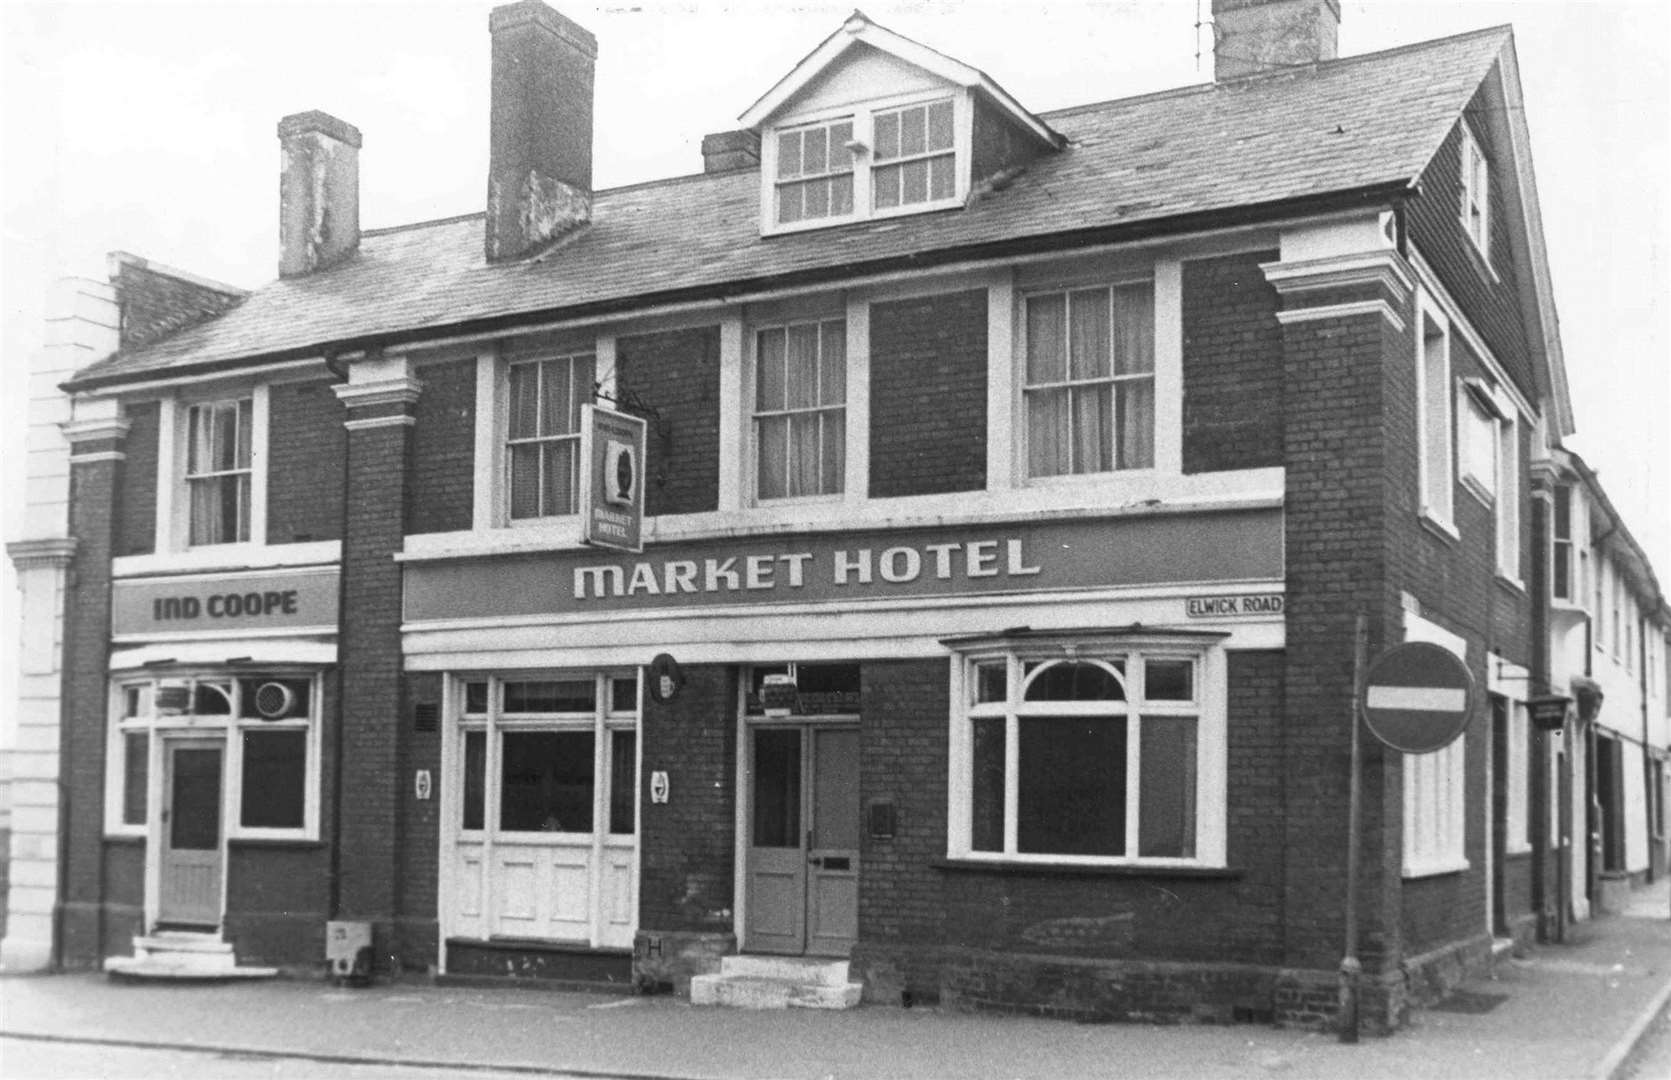 The Market Hotel in Ashford, pictured May 1975. Picture: Images of Ashford by Mike Bennett